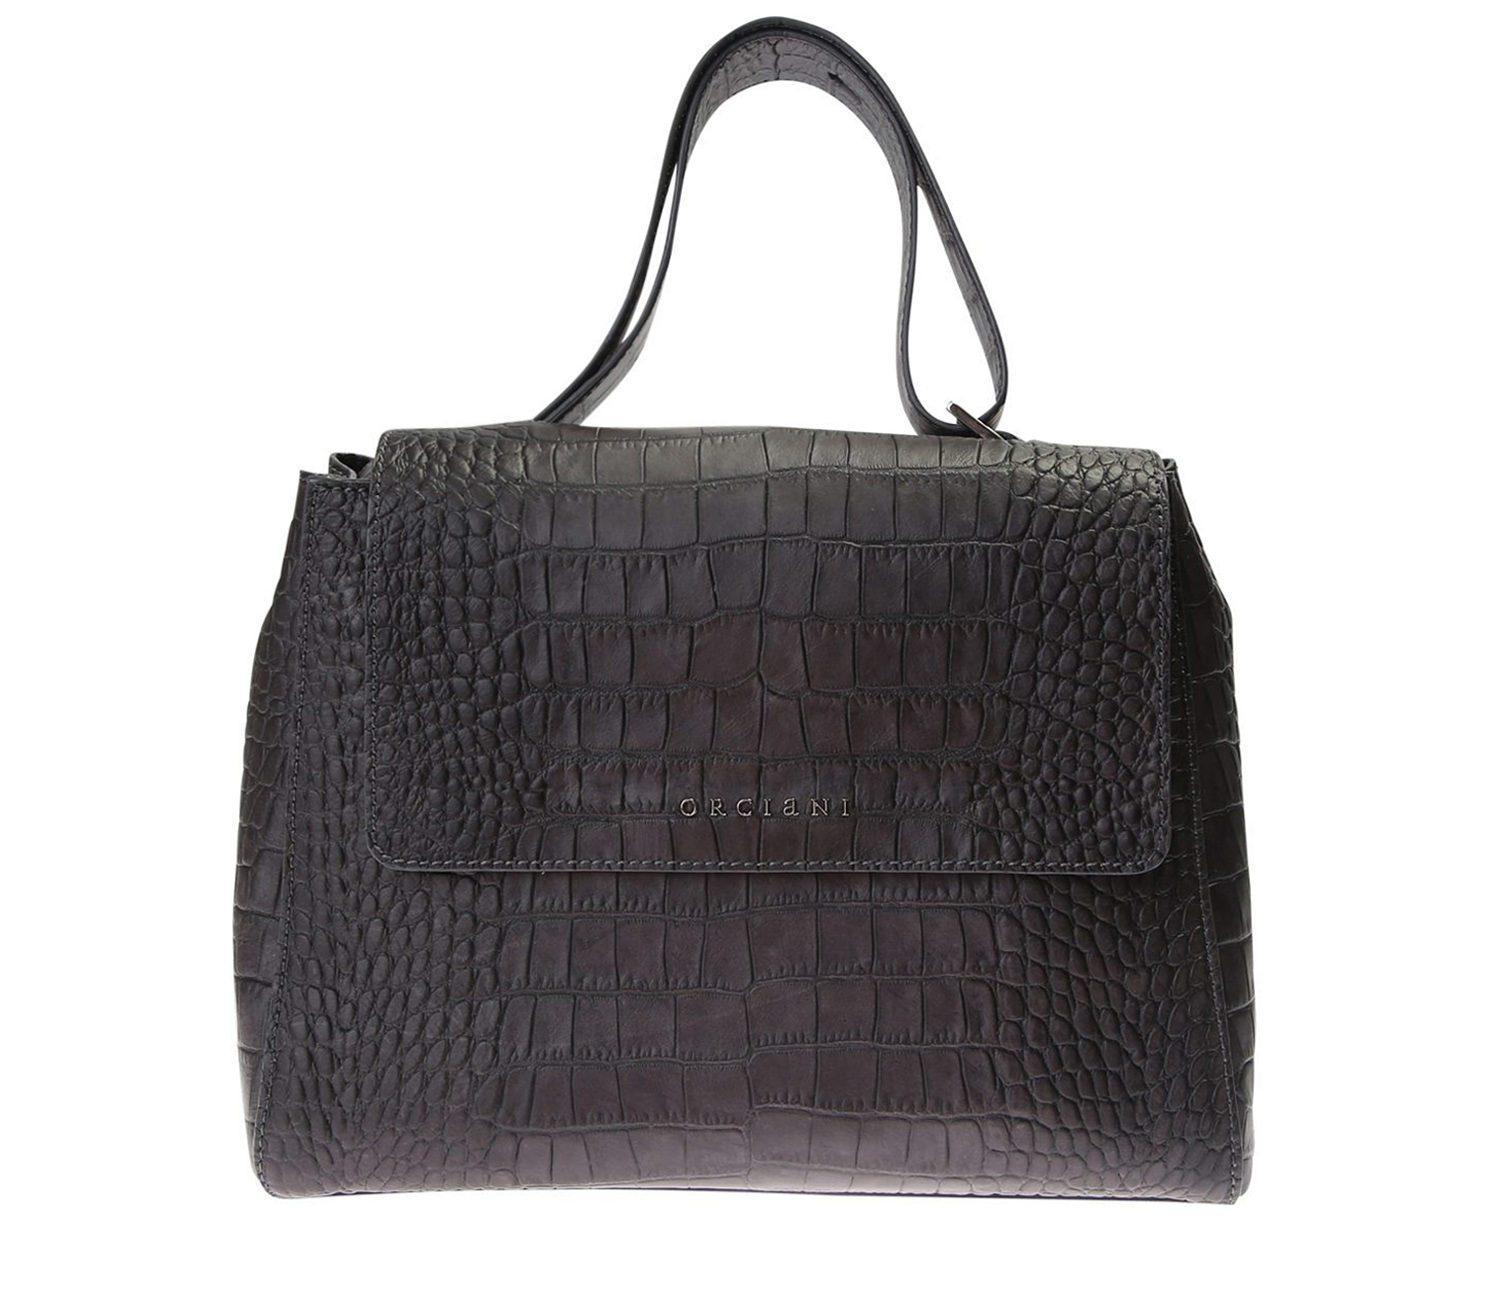 Lyst - Orciani Sveva Small Leather Tote Bag in Black 961880800d994